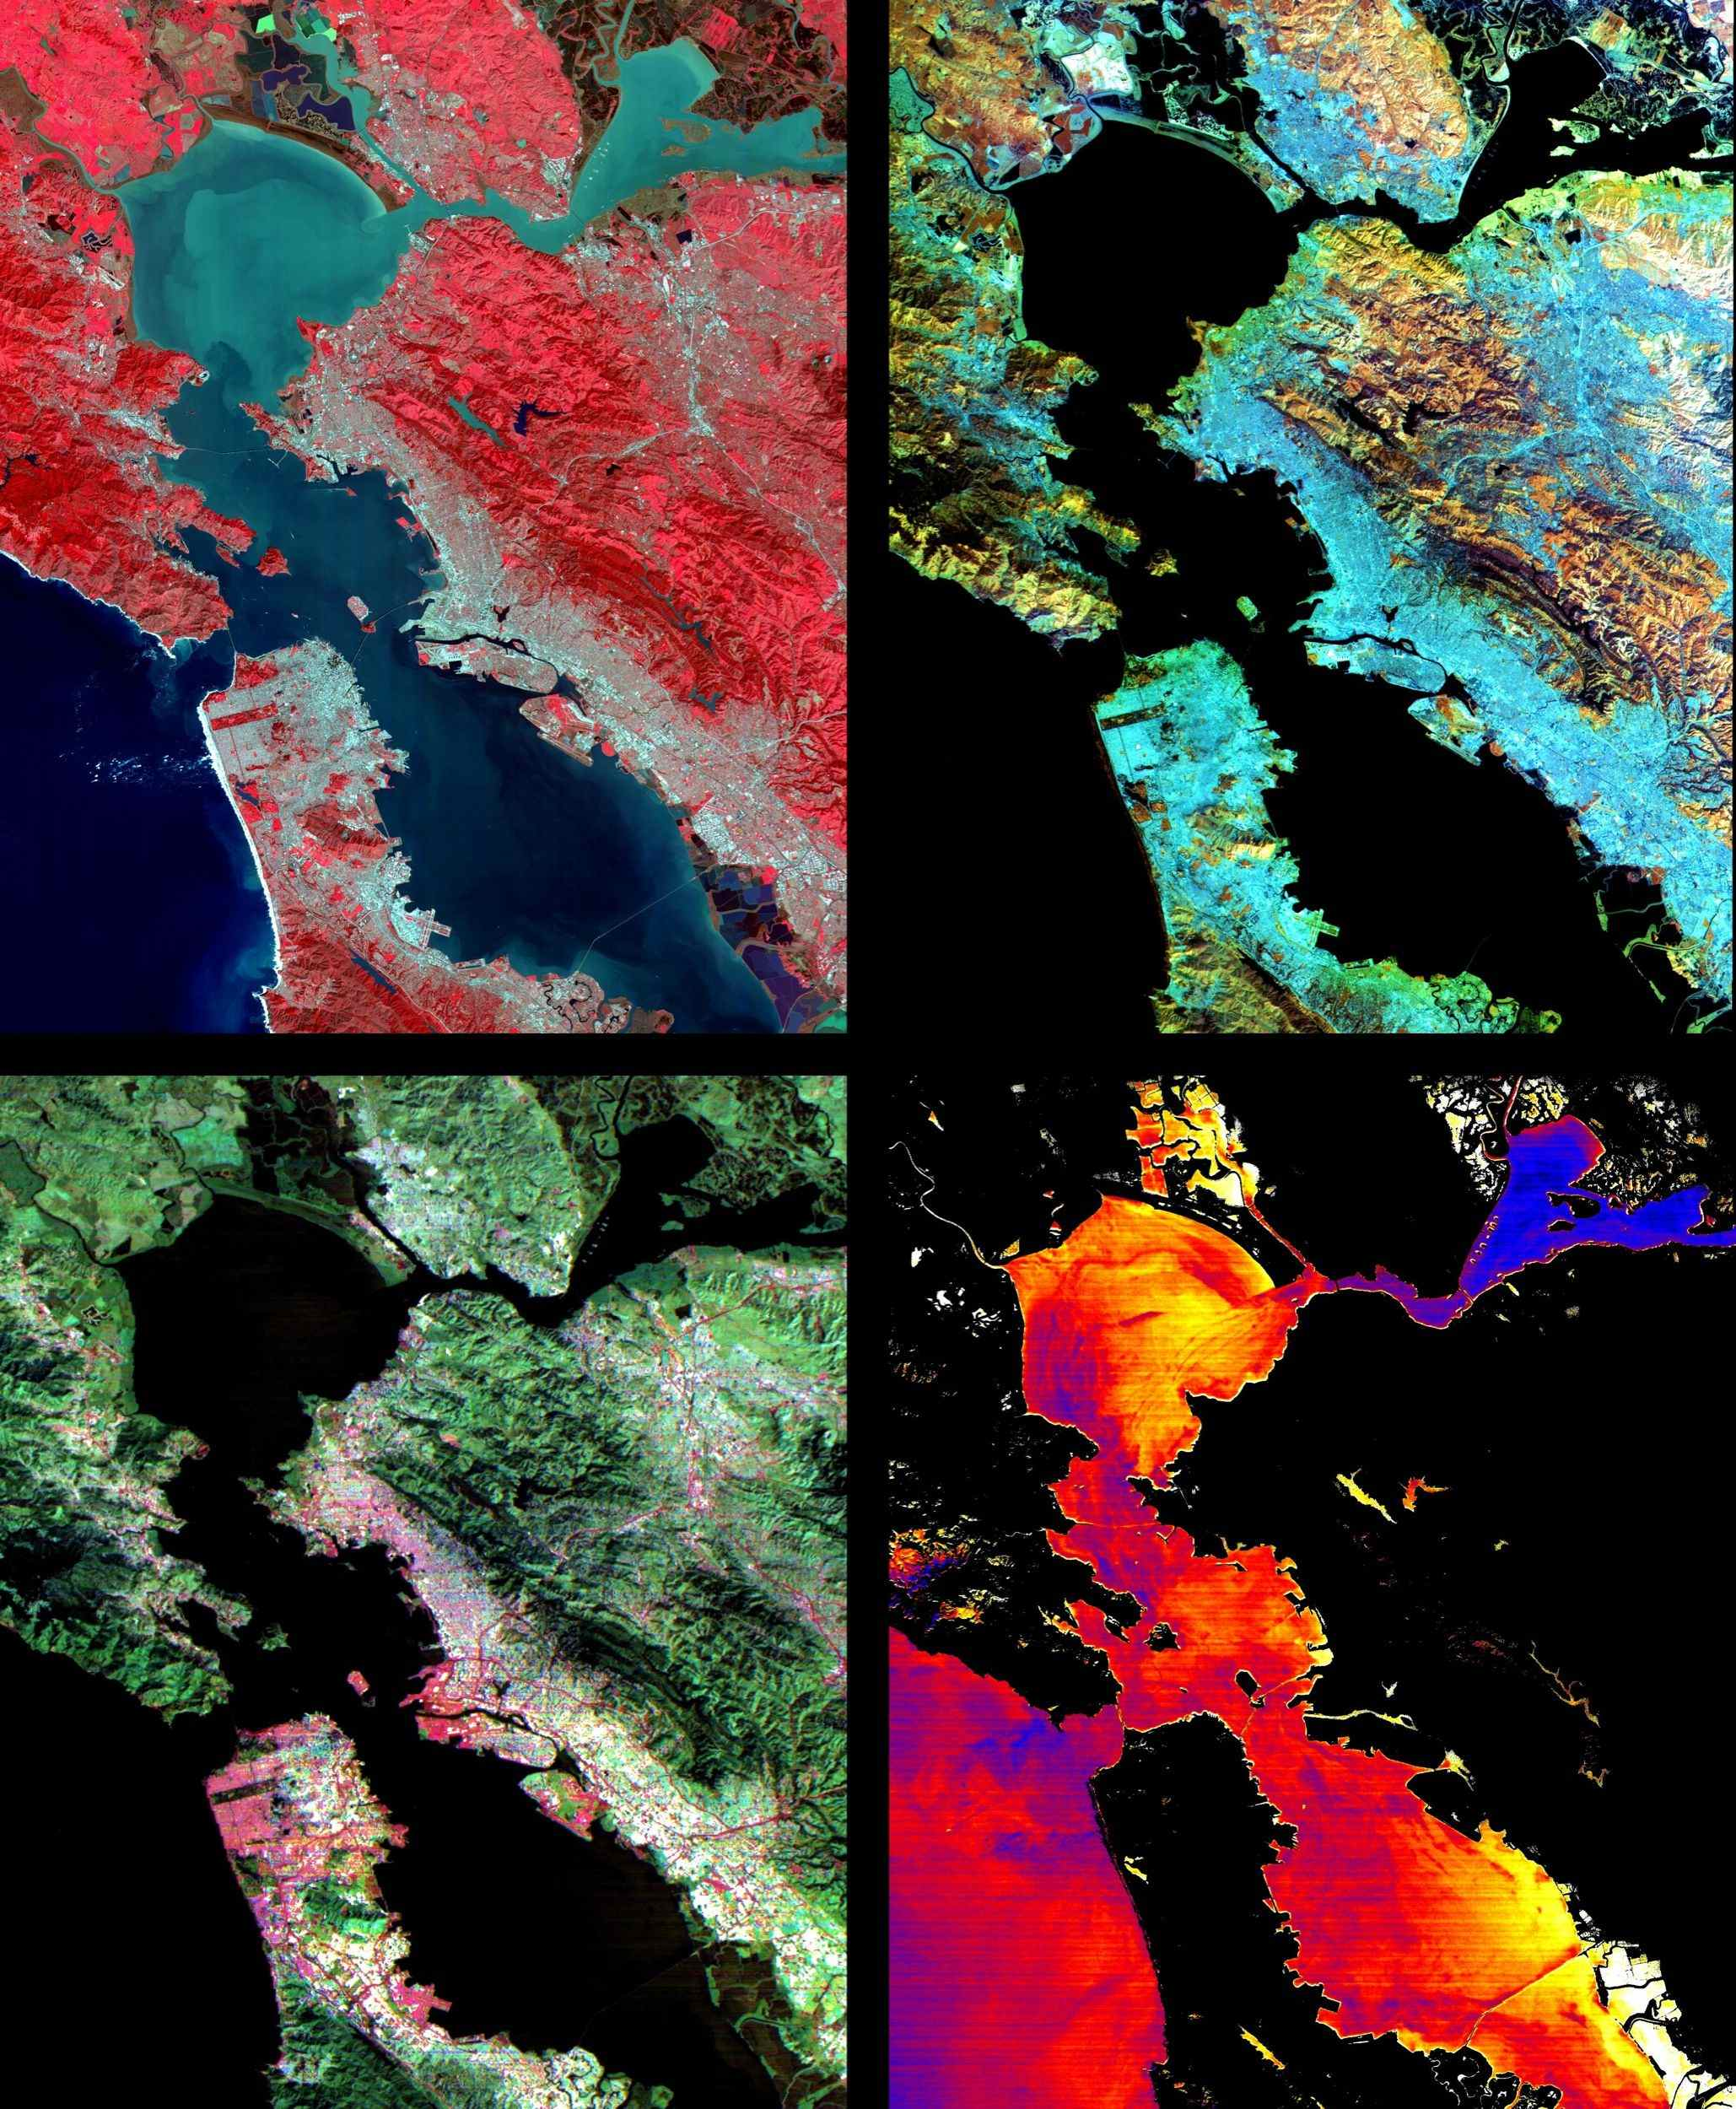 These images of the San Francisco Bay region were acquired on March 3, 2000 by the Advanced Spaceborne Thermal Emission and Reflection Radiometer (ASTER) on NASA's Terra satellite.